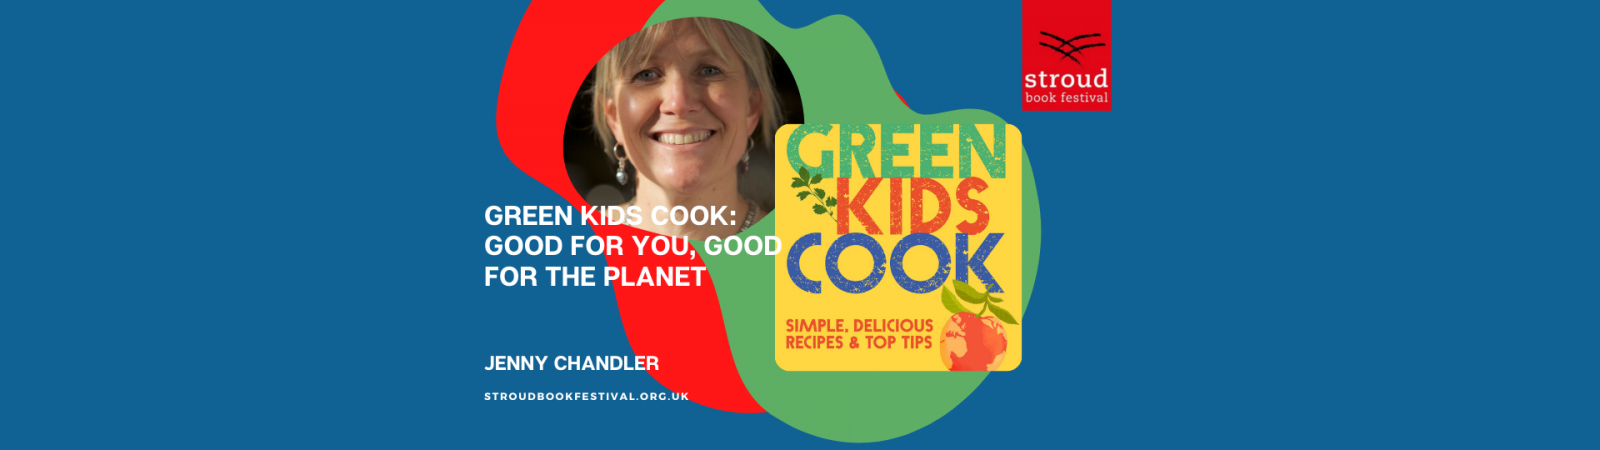 Jenny Chandler, Green Kids Cook: Good For You, Good For The Planet